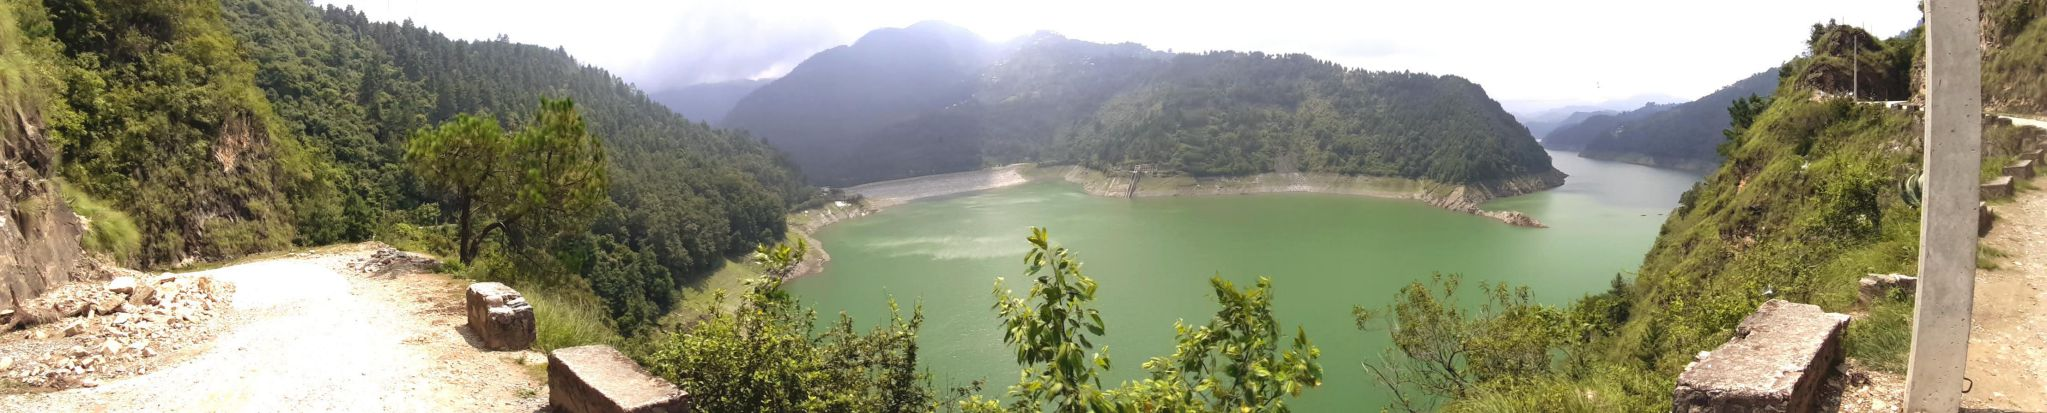 Panorama View of the Kulekhani Dam